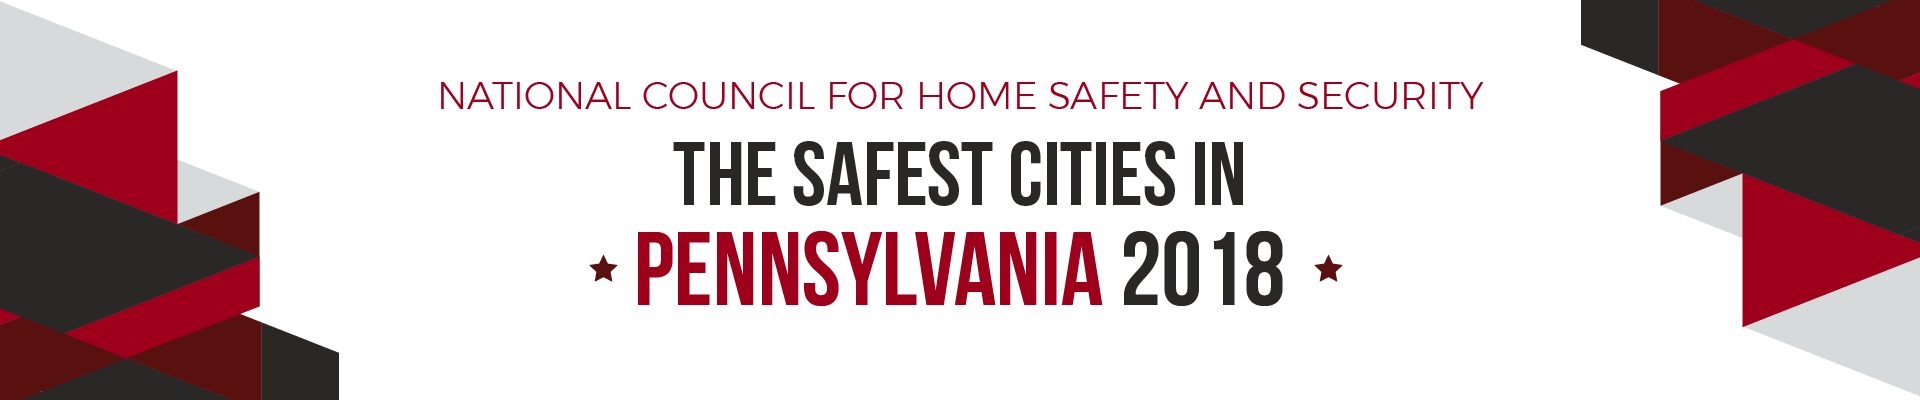 safe cities pennsylvania 2018